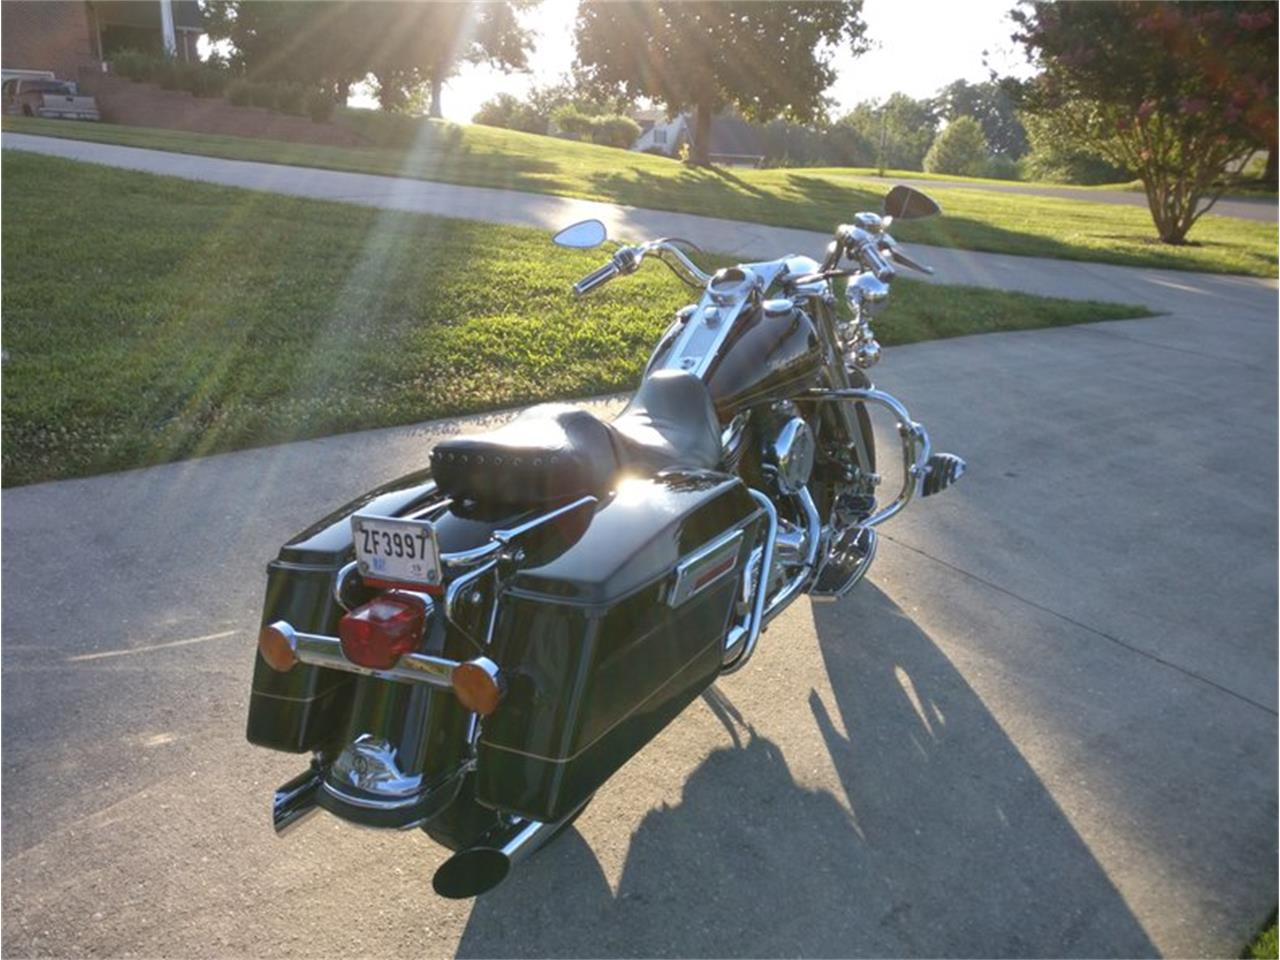 1998 Harley-Davidson Road King for sale in Cookeville, TN – photo 6